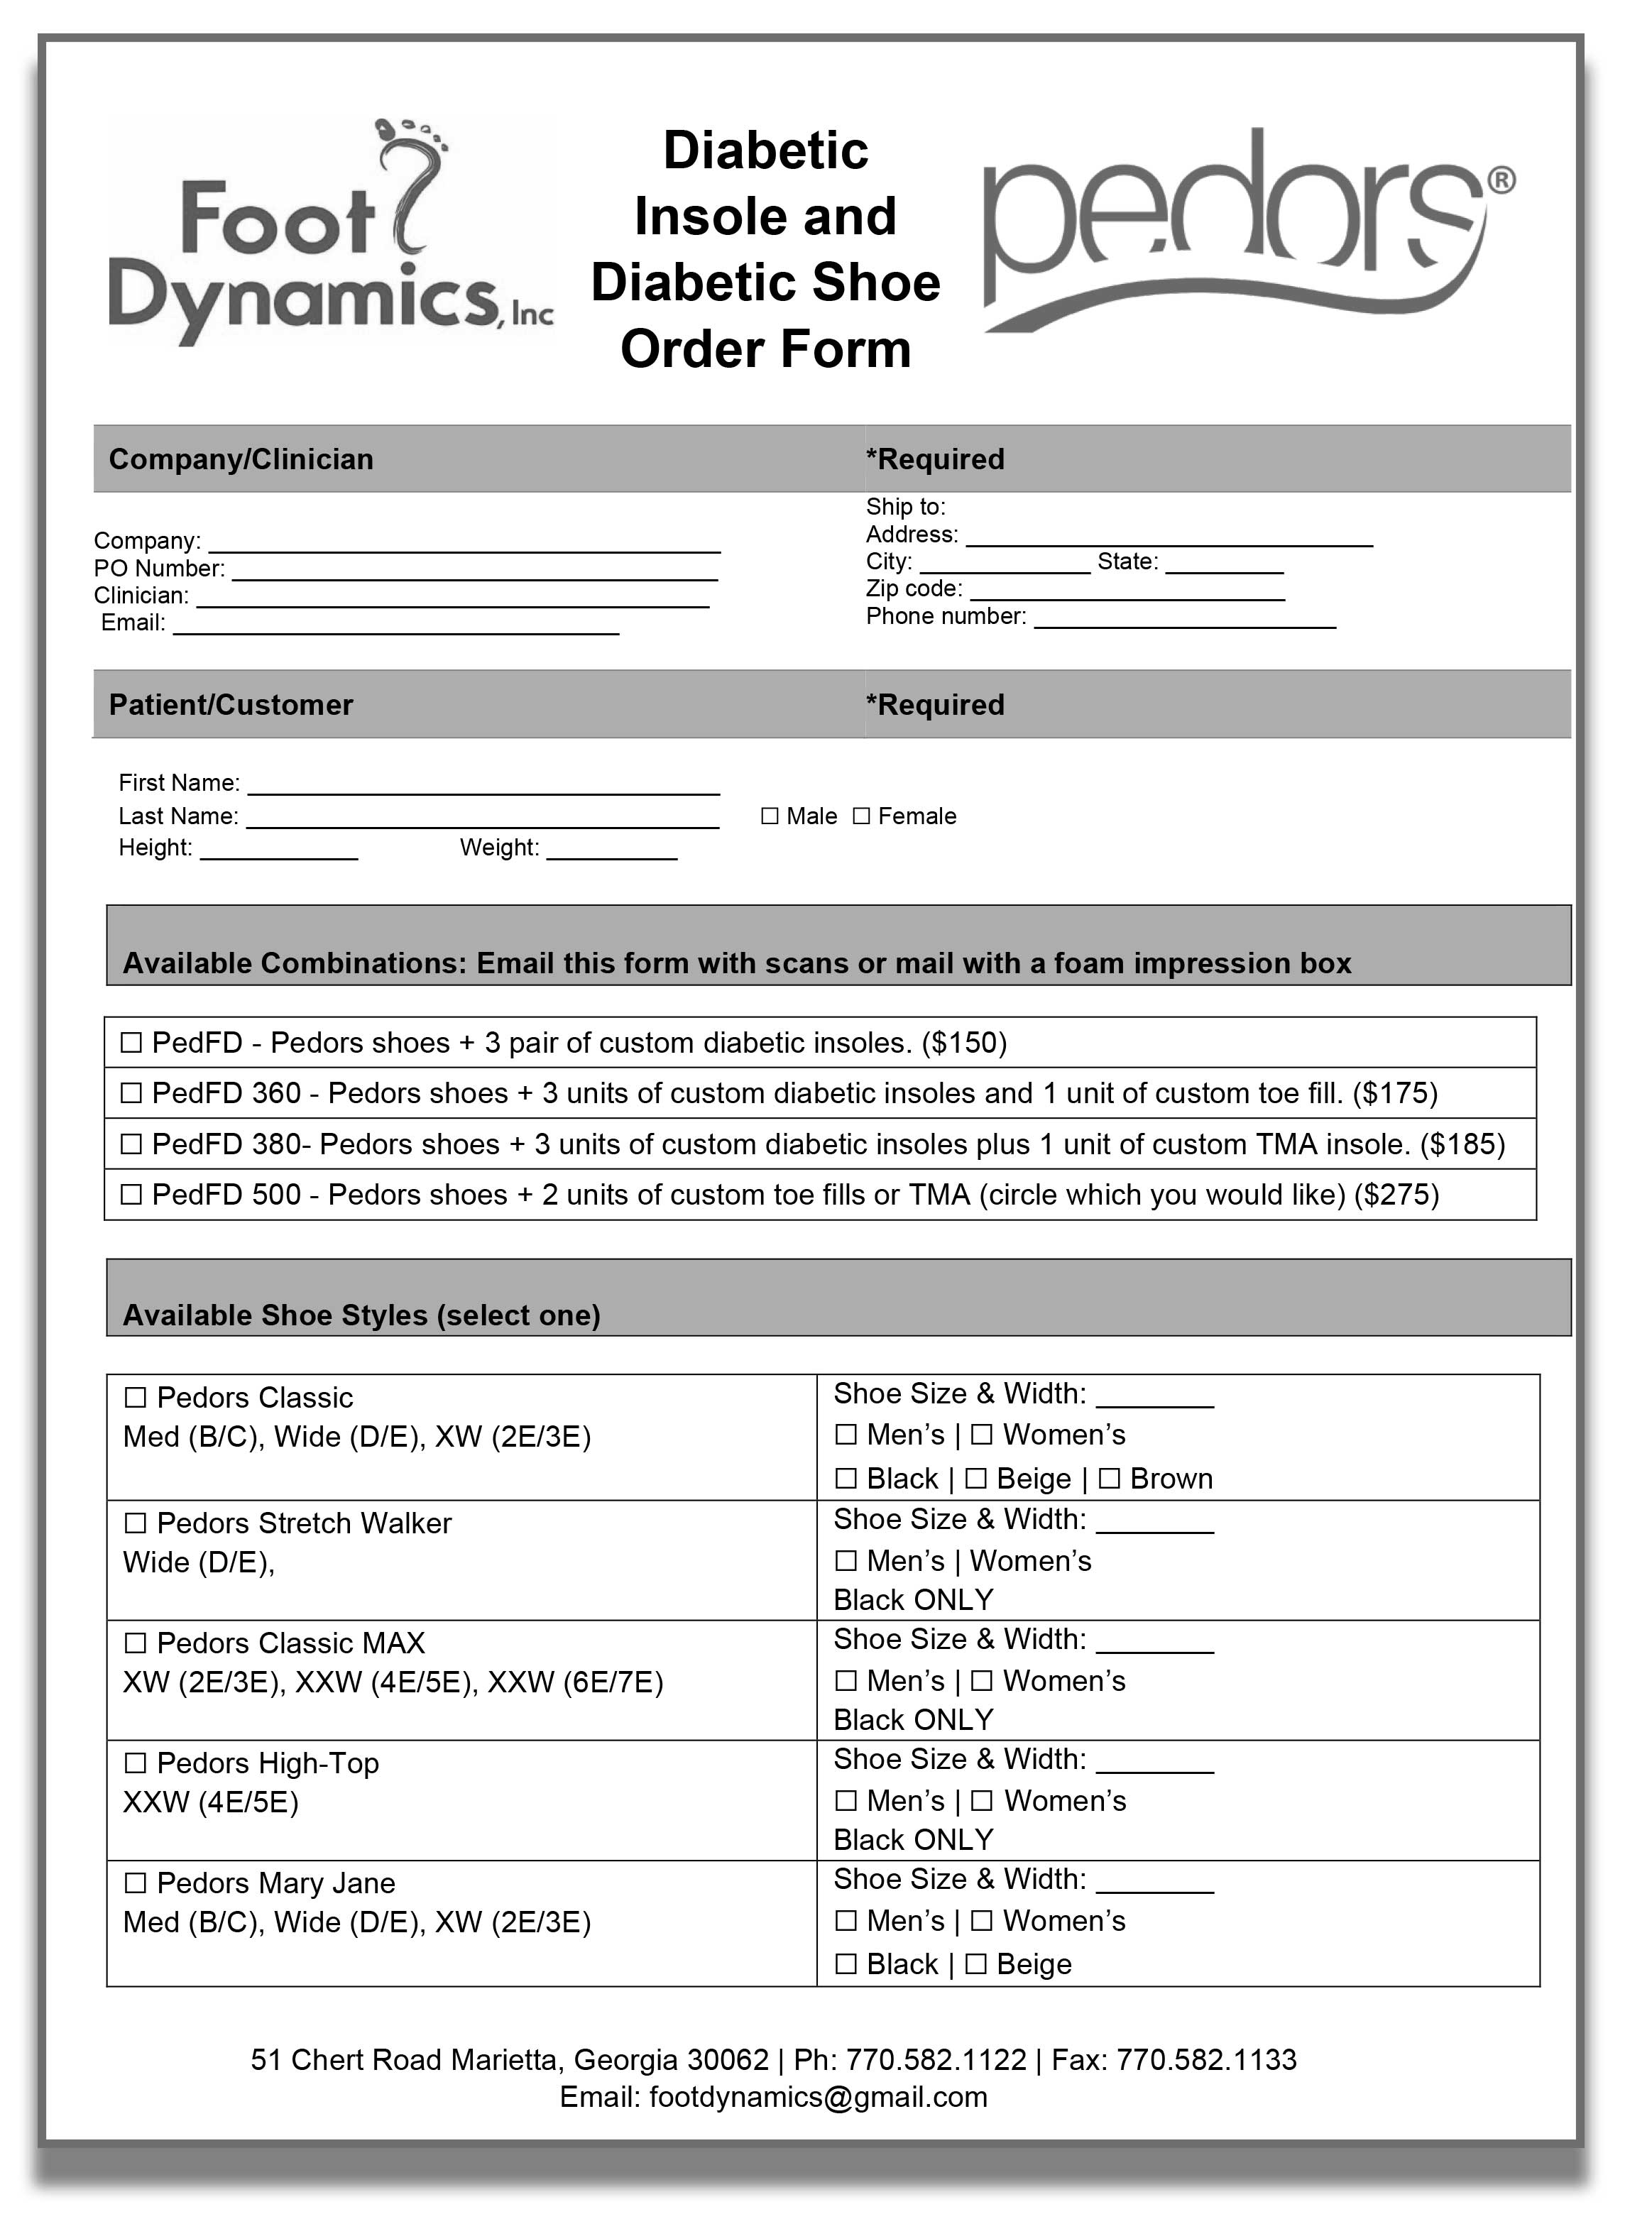 foot-dynamics-and-pedors-order-form-11-11-2020-2.jpg